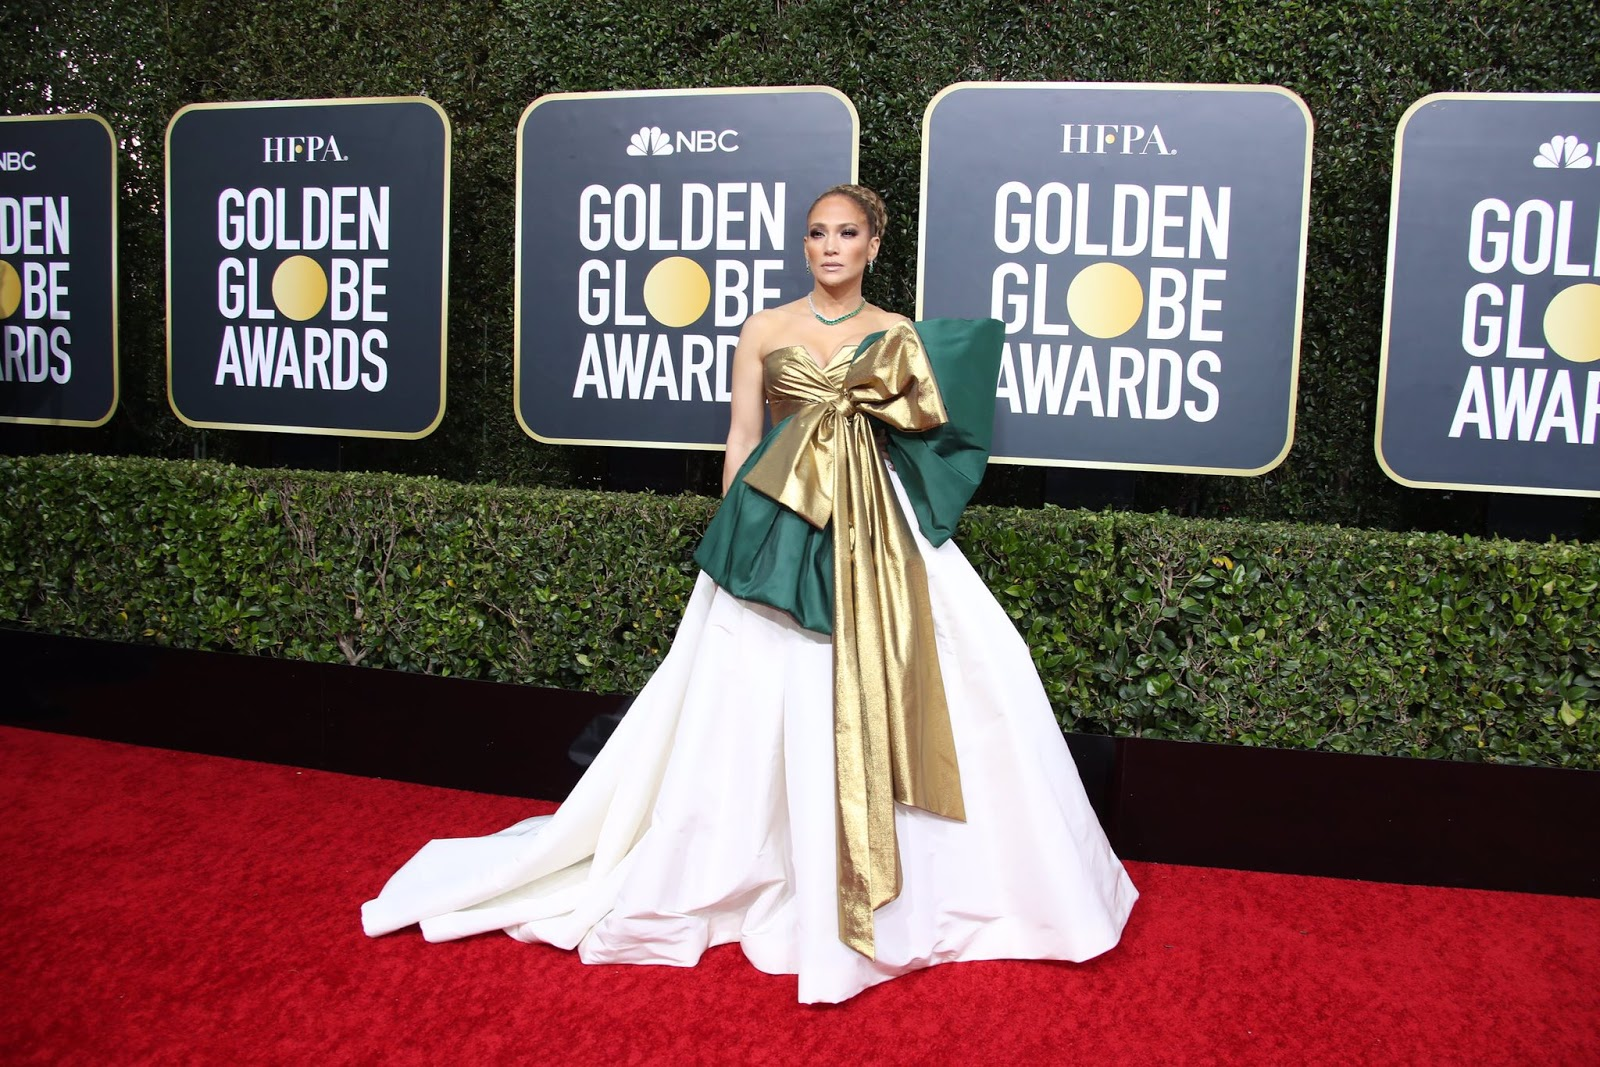 Jennifer Lopez Went All Out in a Giant Bow Dress at the 2020 Golden Globes